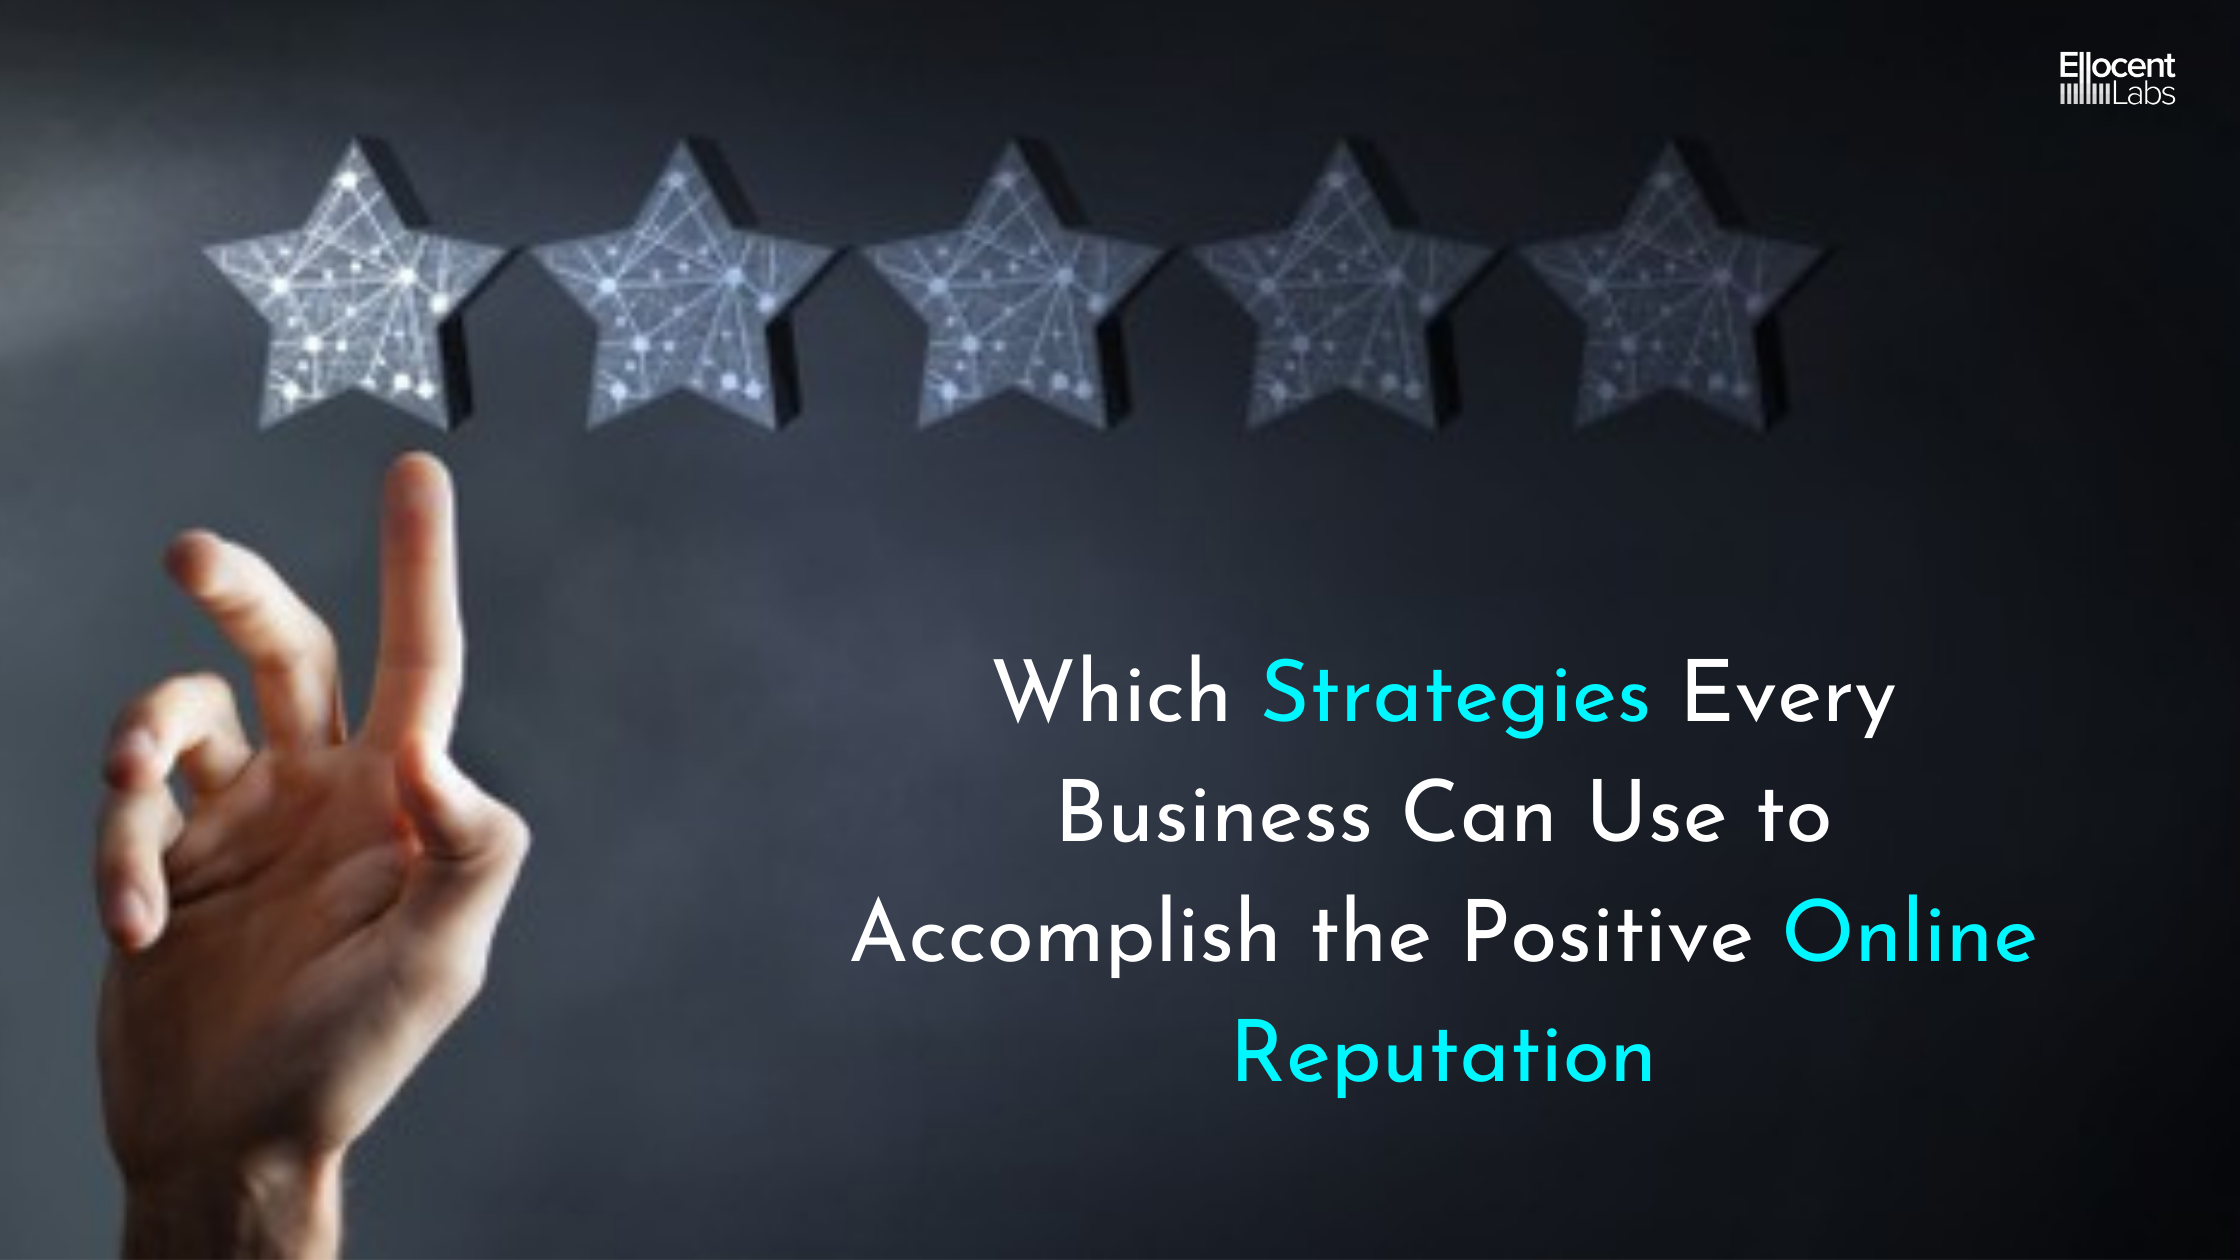 Which Strategies Every Business Can Use to Accomplish the Positive Online Reputation